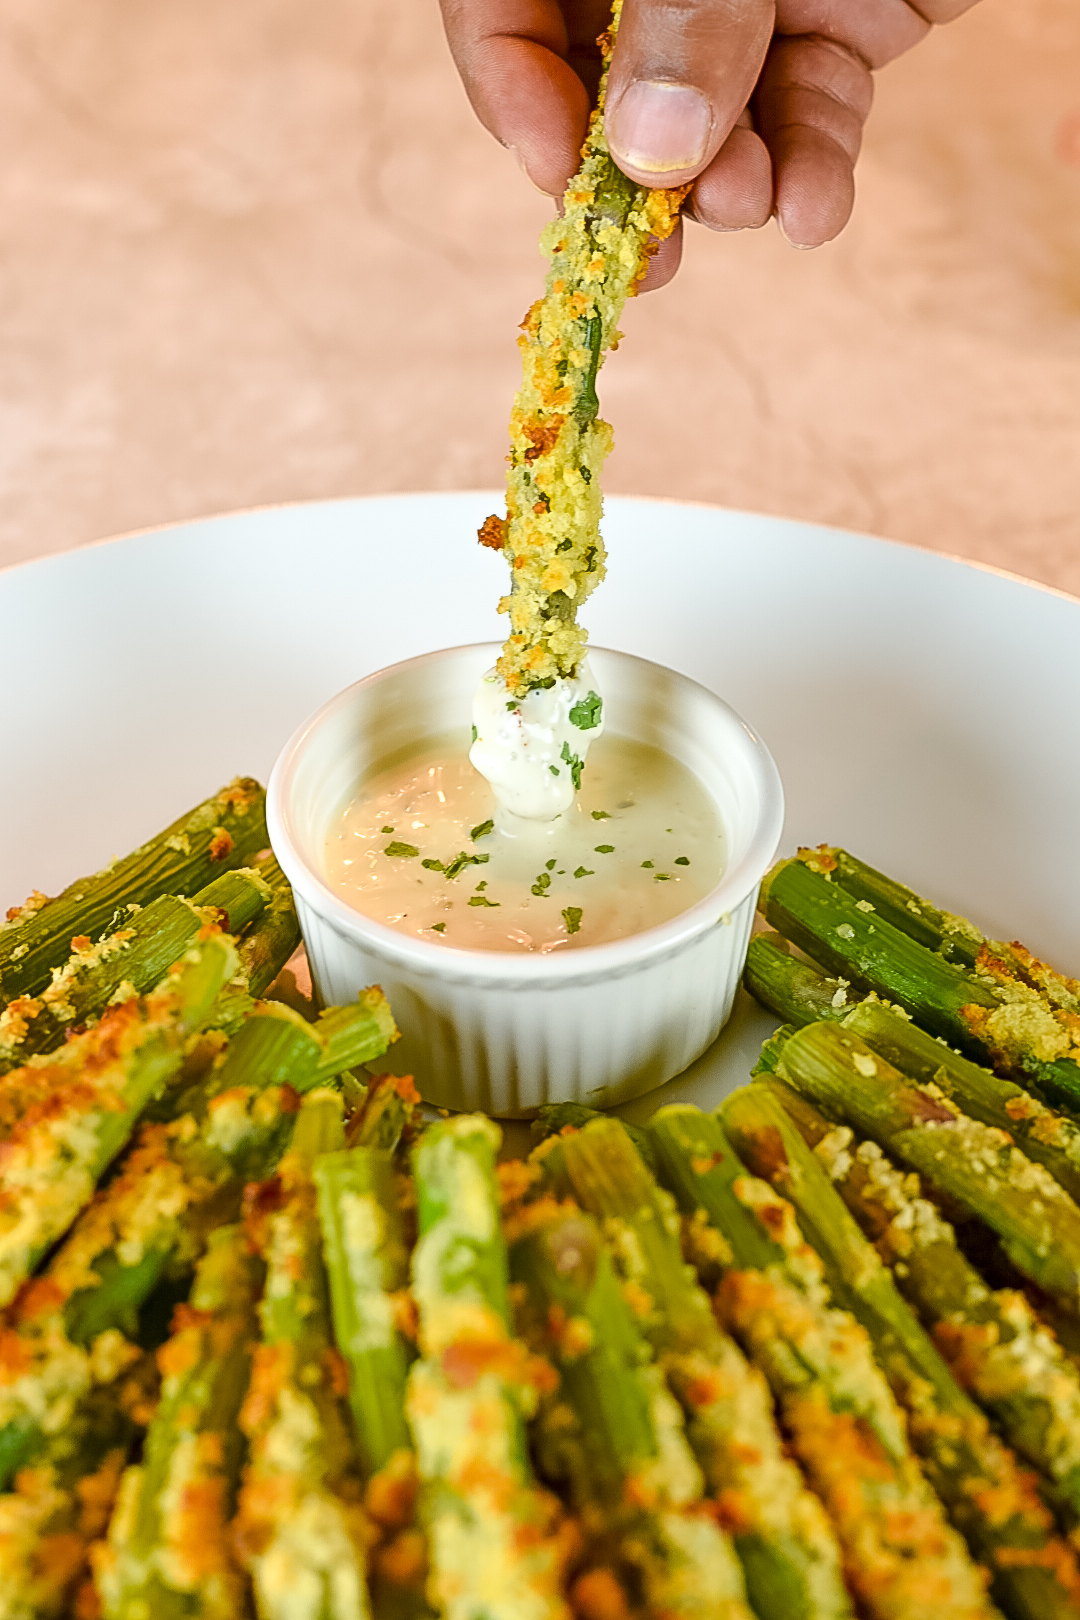 Dipping Parmesan Crusted Asparagus Spears in ranch dressing.